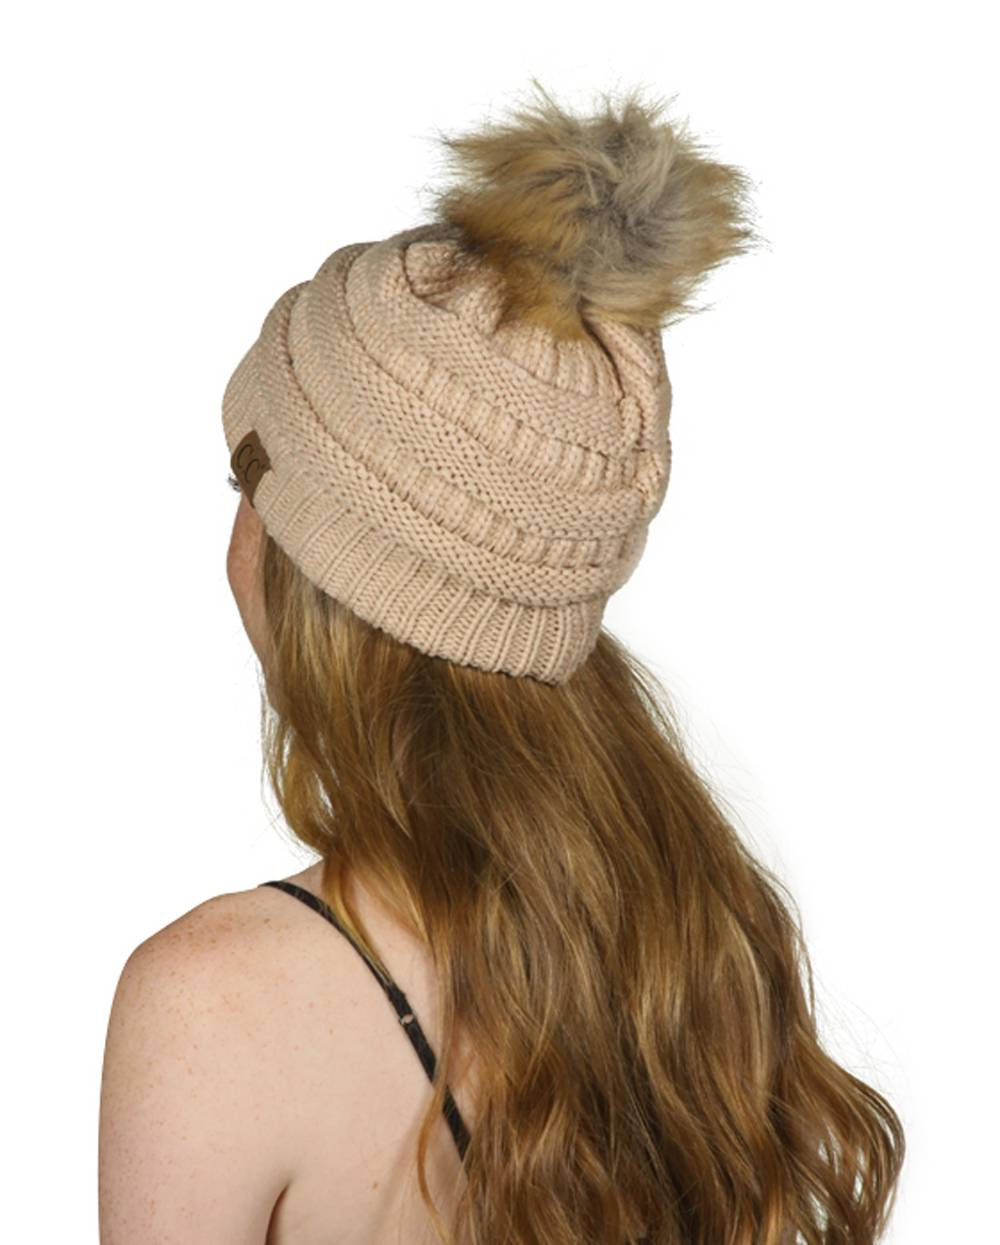 d860eb11537 Gravity Threads Cable Knit Faux Fur Pom Pom Beanie Hat - Gravity Trading